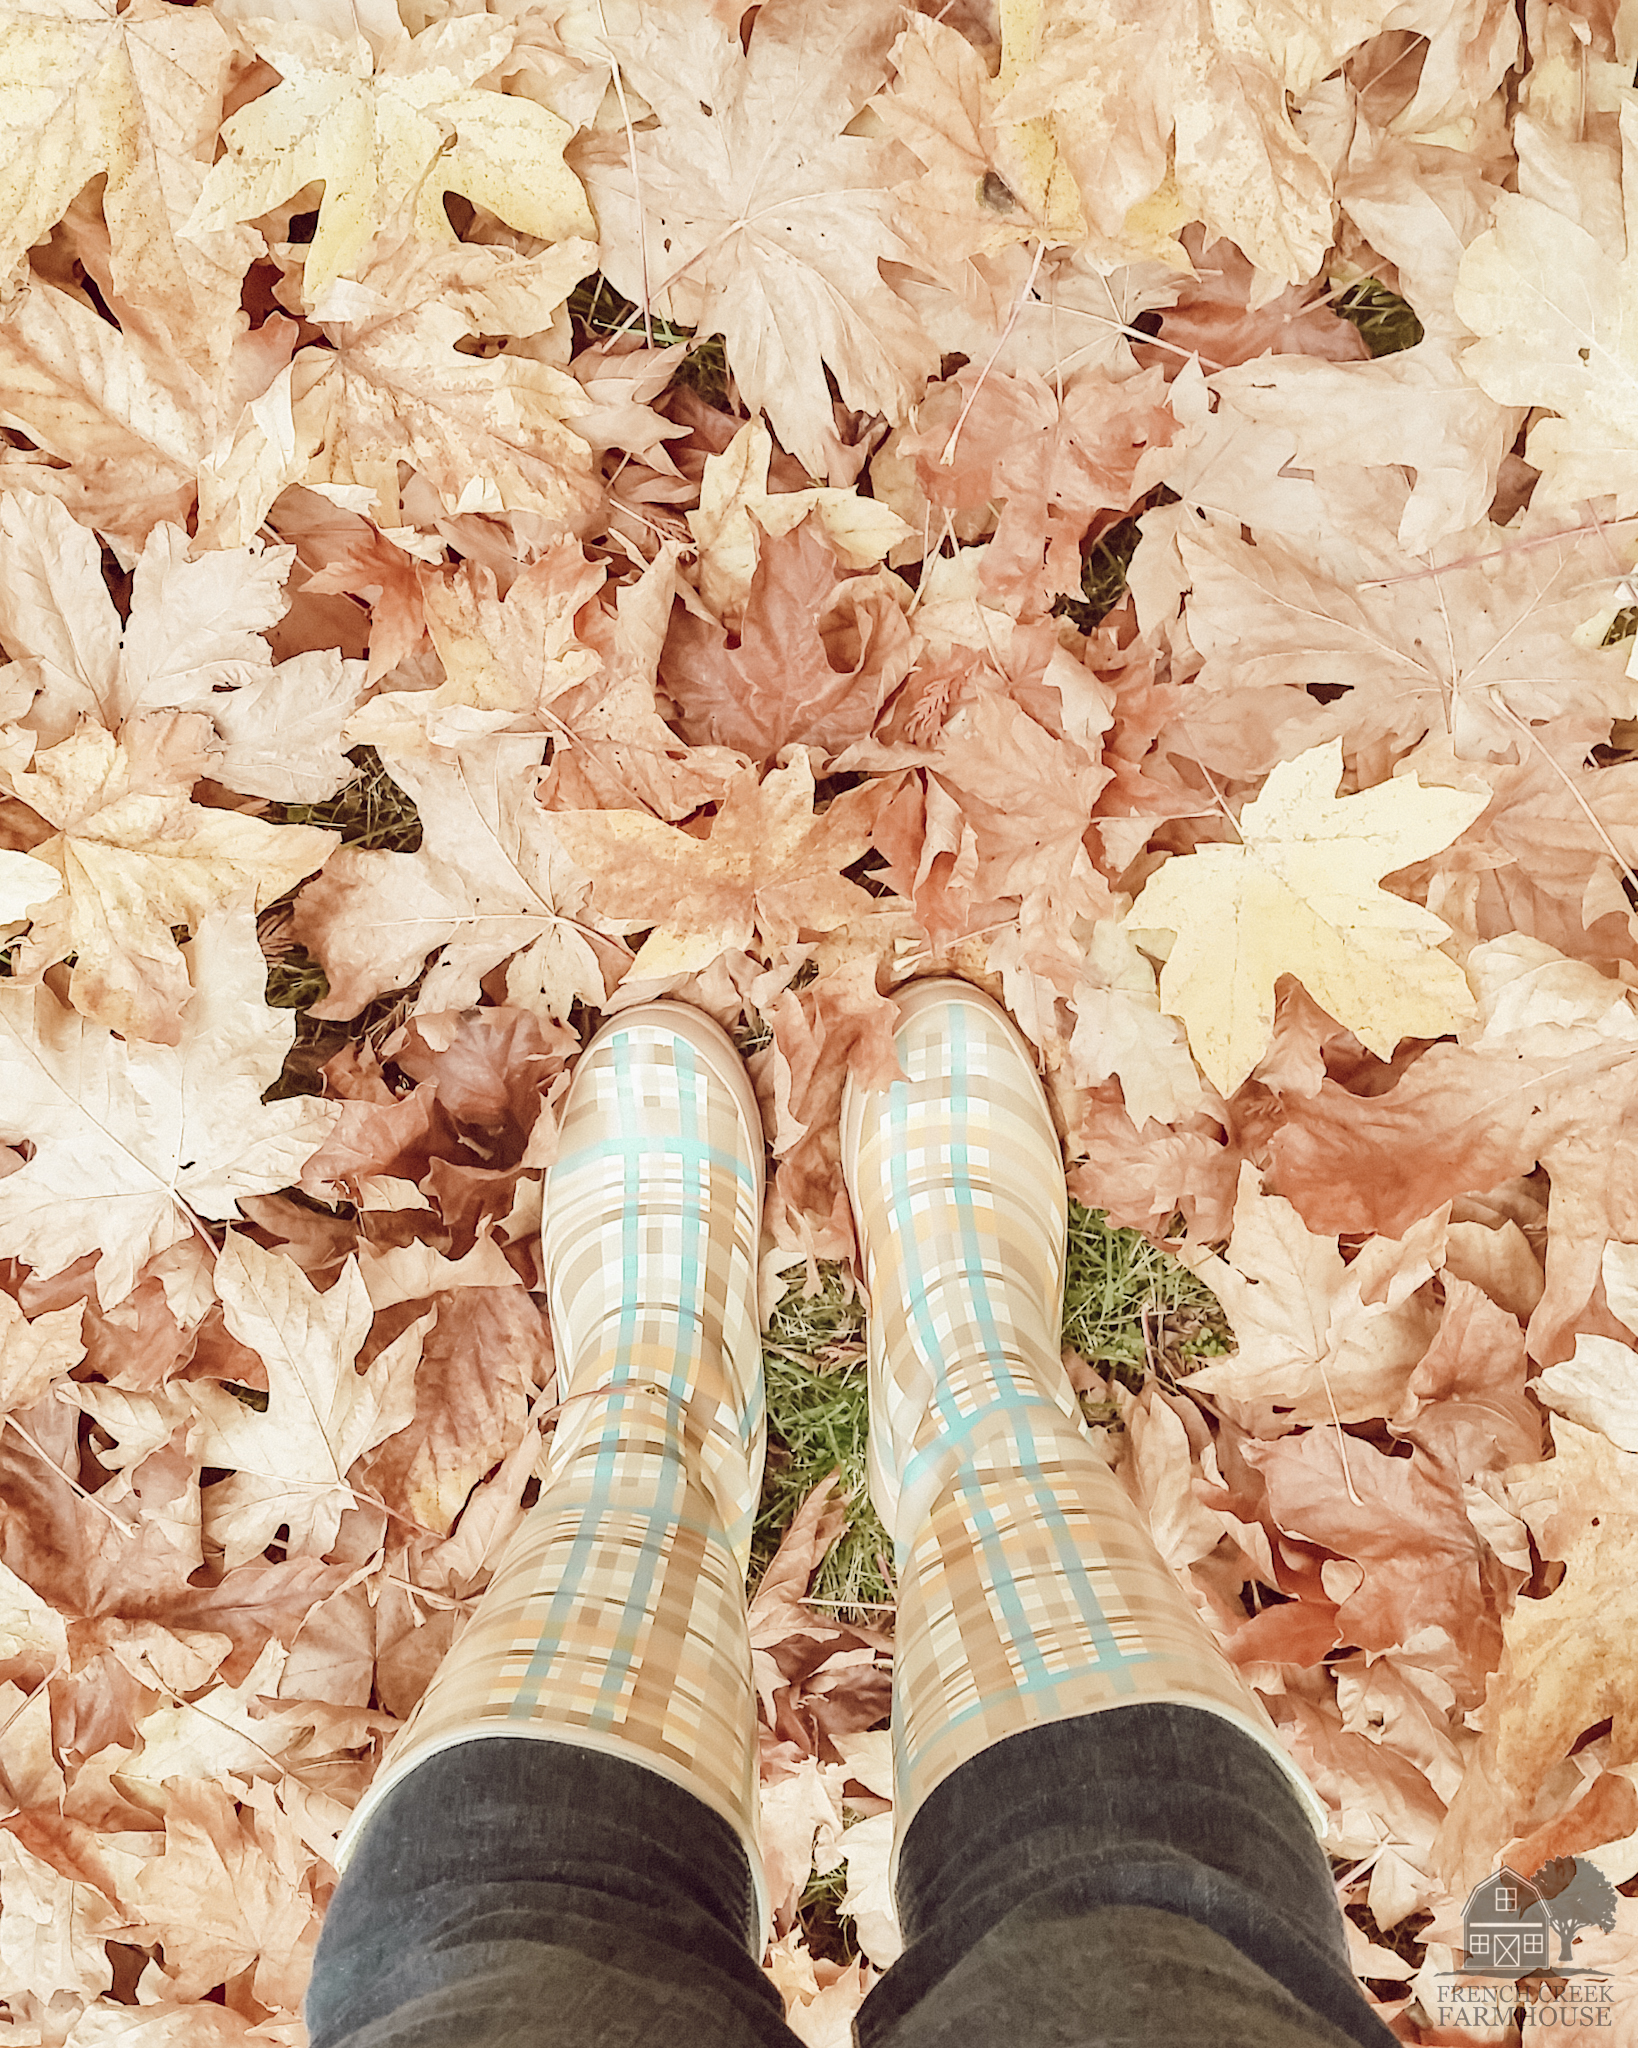 Rainboots standing in autumn leaves